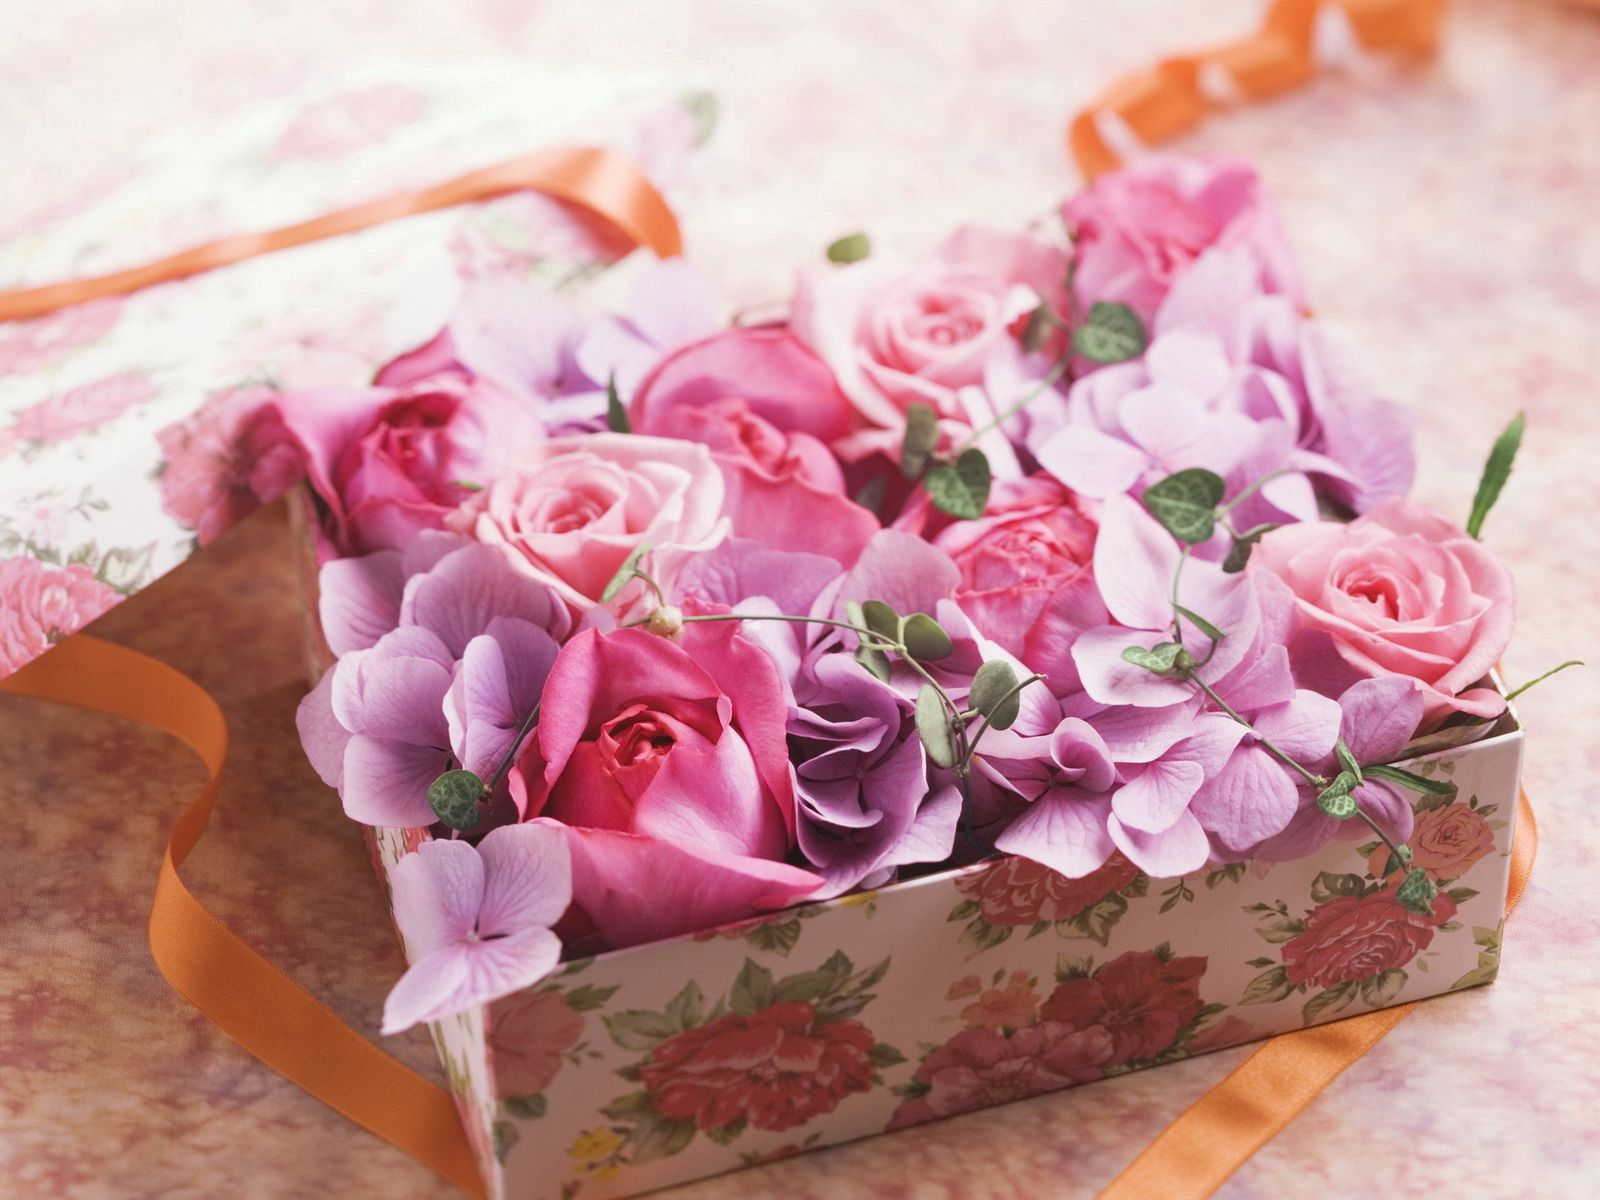 77716 download wallpaper Flowers, Box, Capsule, Tape, Present, Gift, Roses screensavers and pictures for free